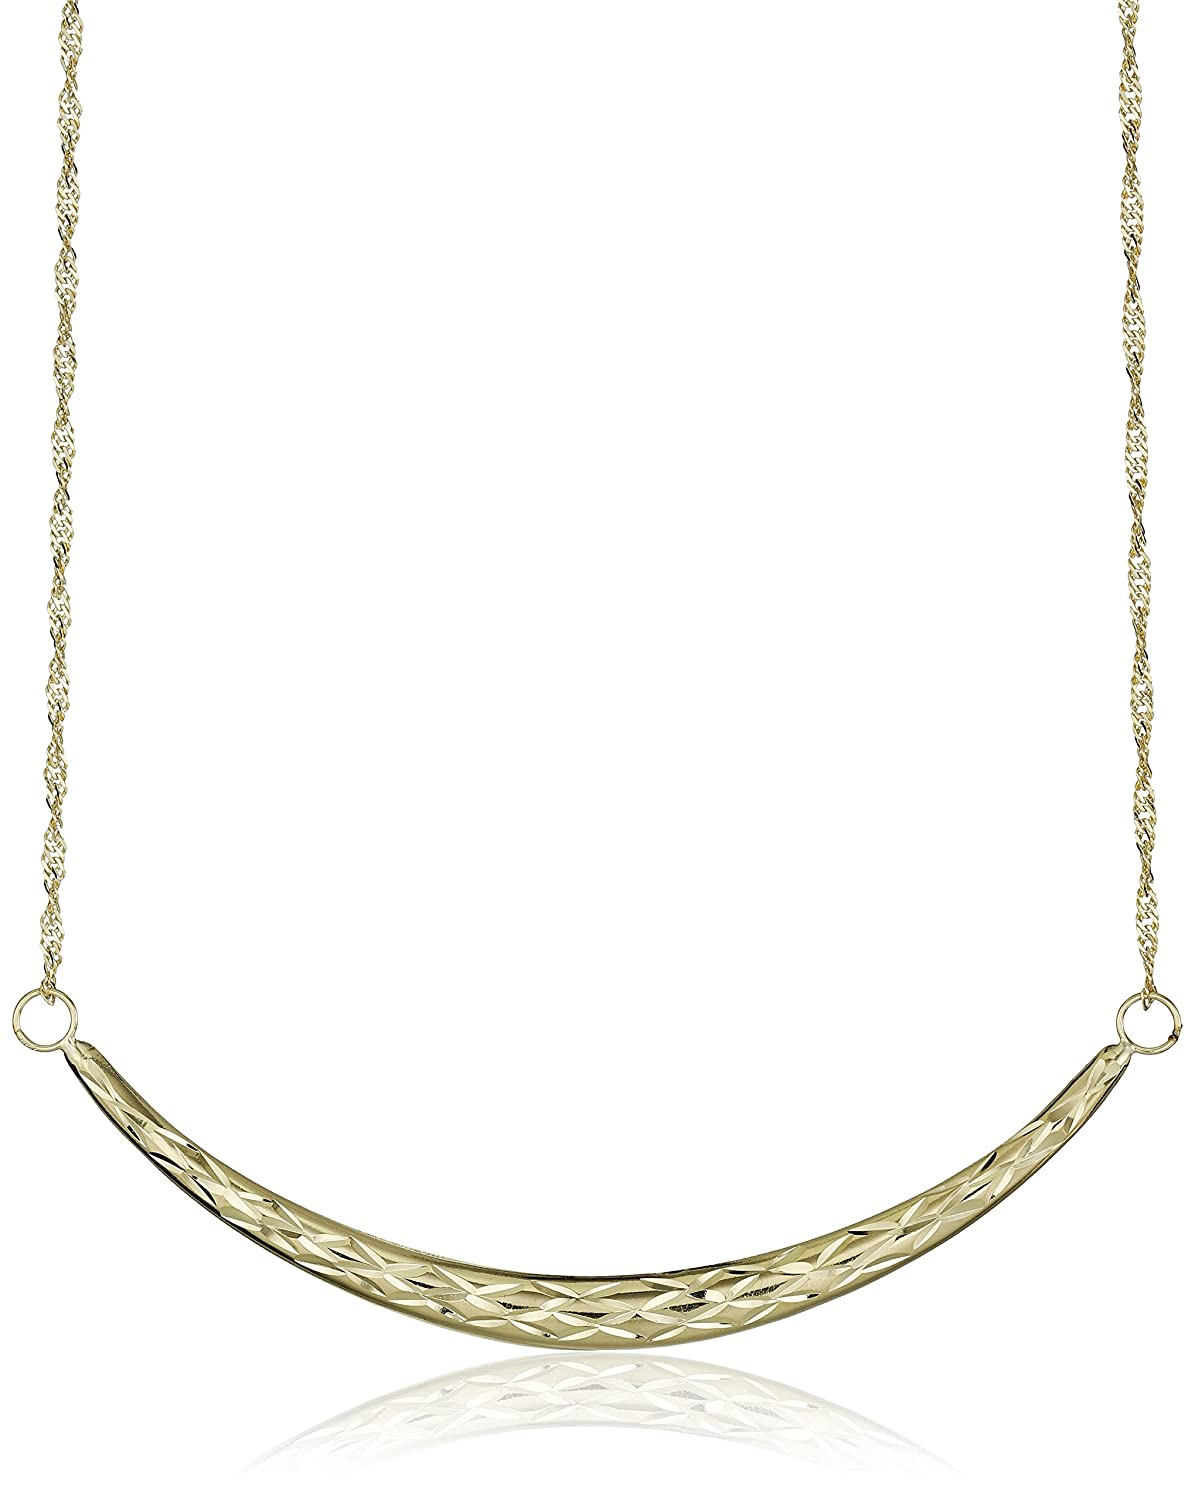 10k Yellow Gold Curved Bar Necklace, 17""